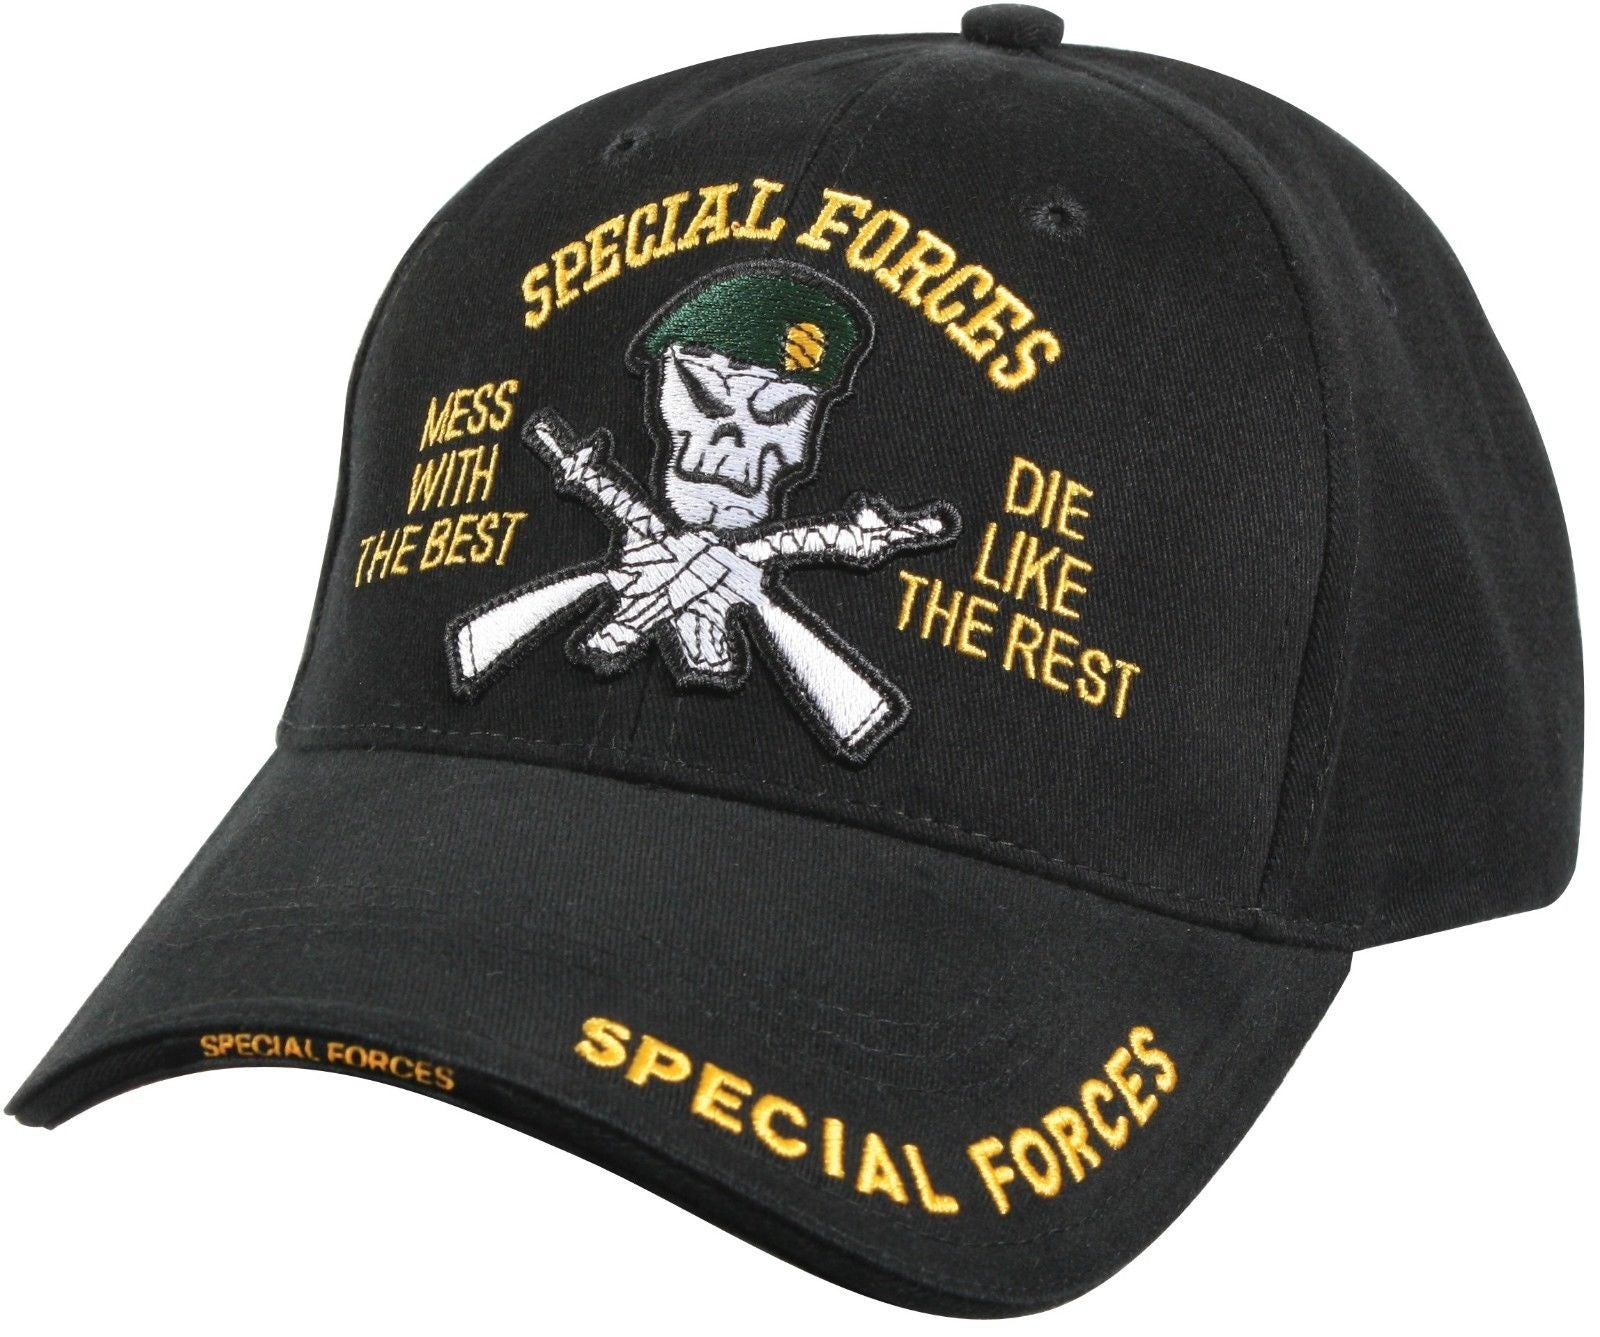 aba56cdb17d Special Forces Cap Black - Deluxe Low Profile Insignia Hat – Grunt Force